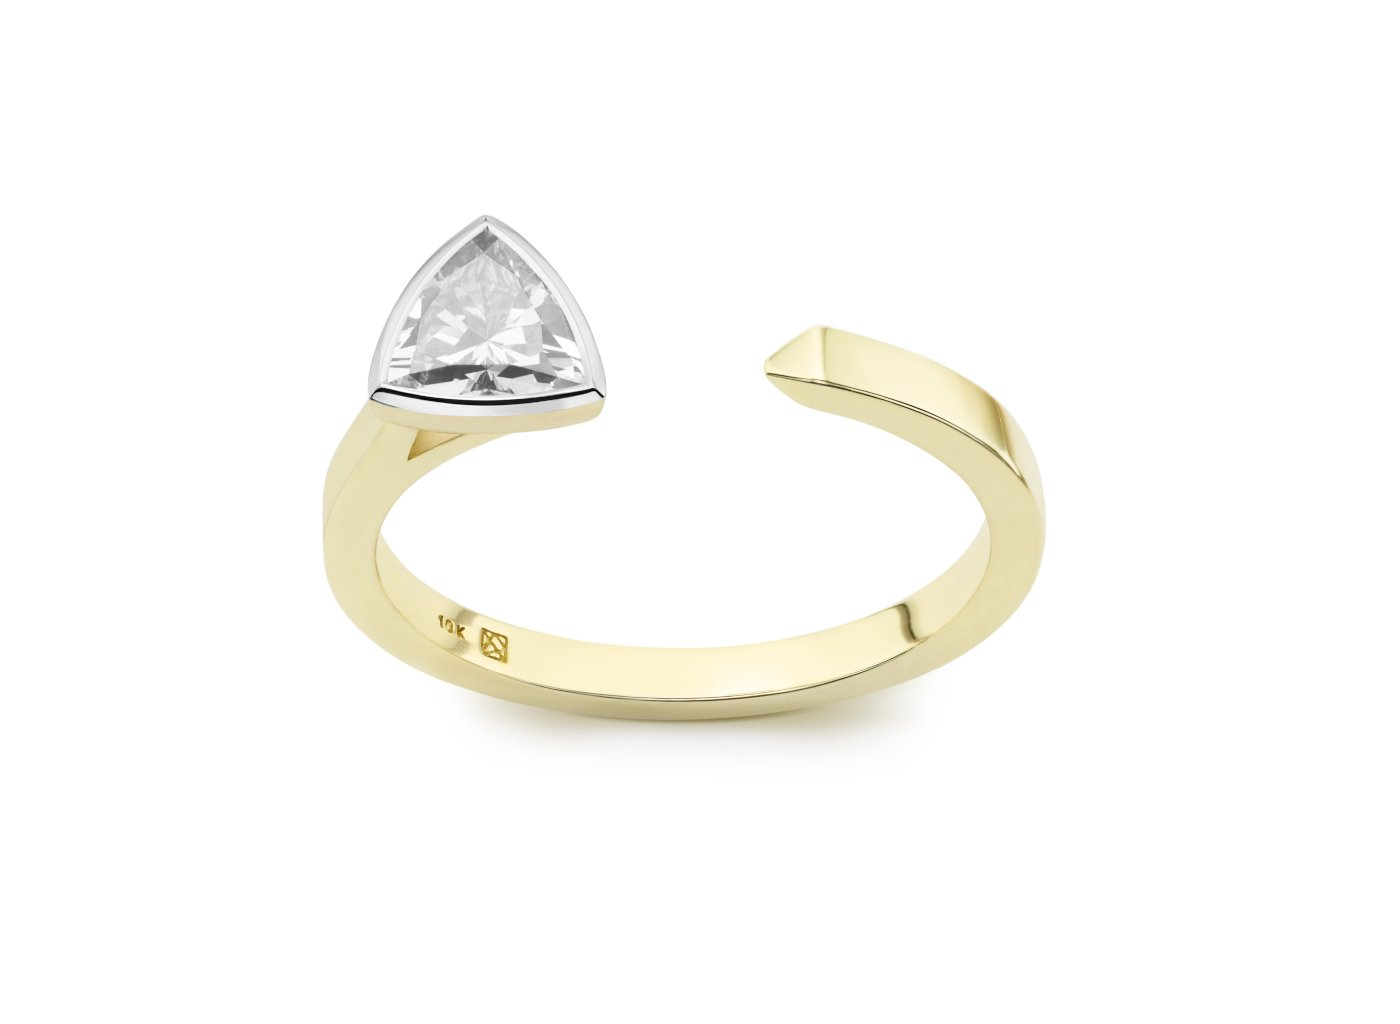 Front view of Trillion open top 3/8 carat ring with white diamond